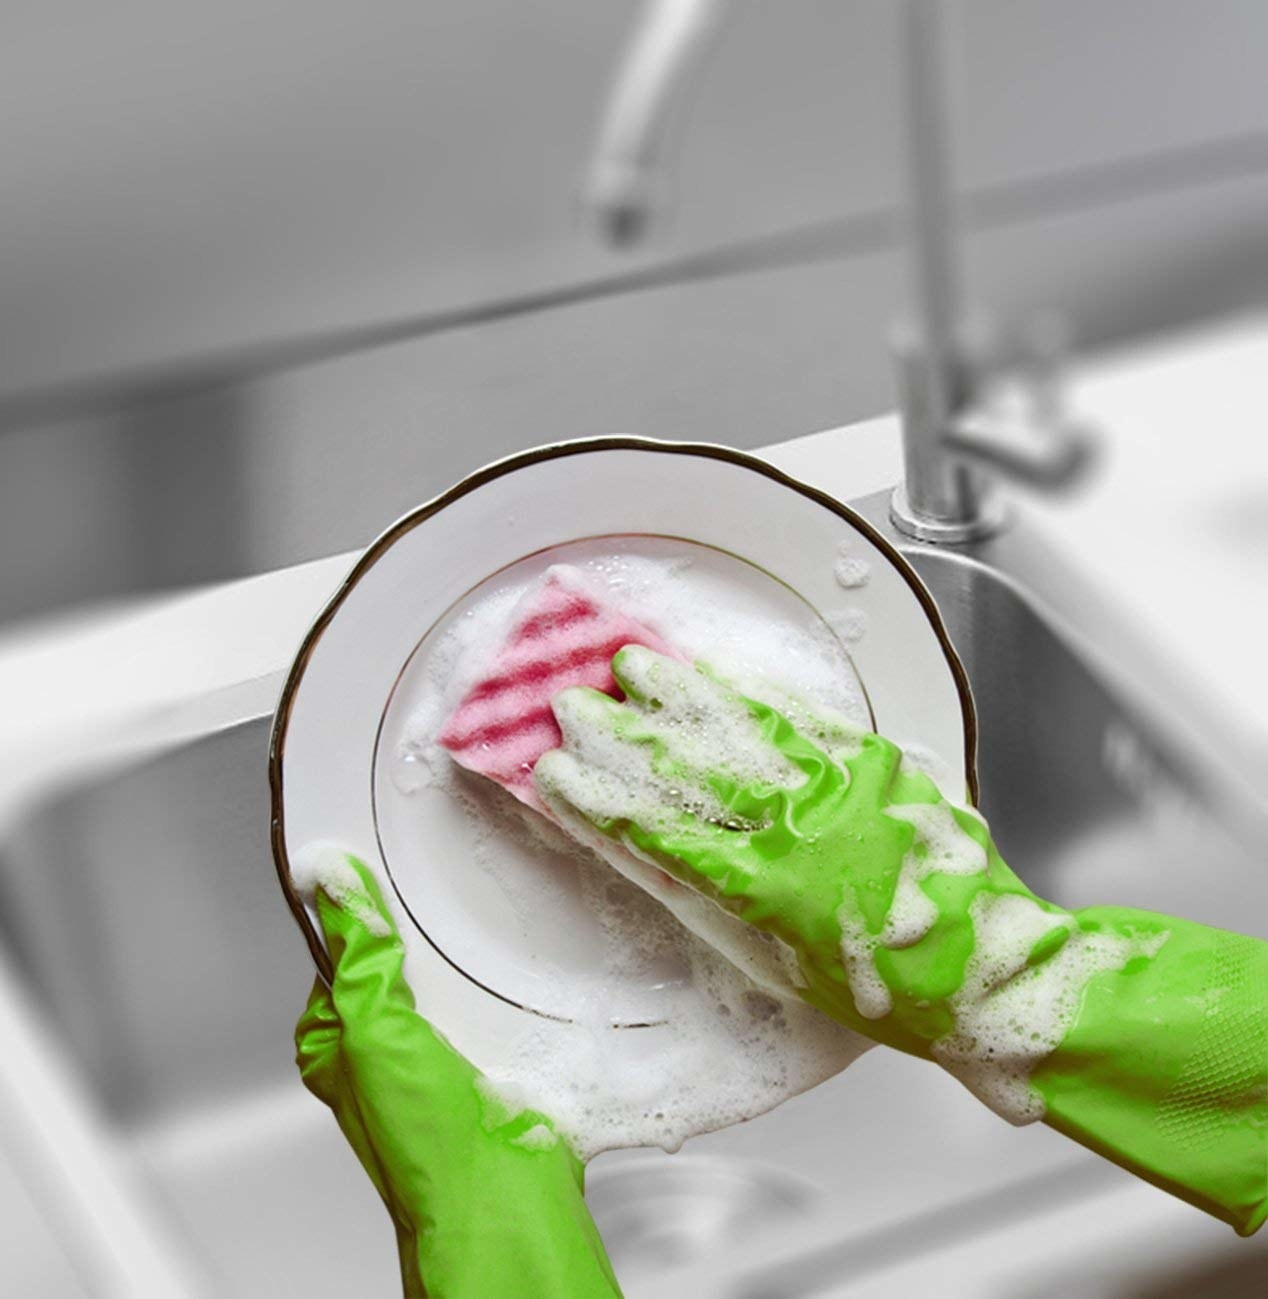 Hands in green rubber gloves cleaning dishes